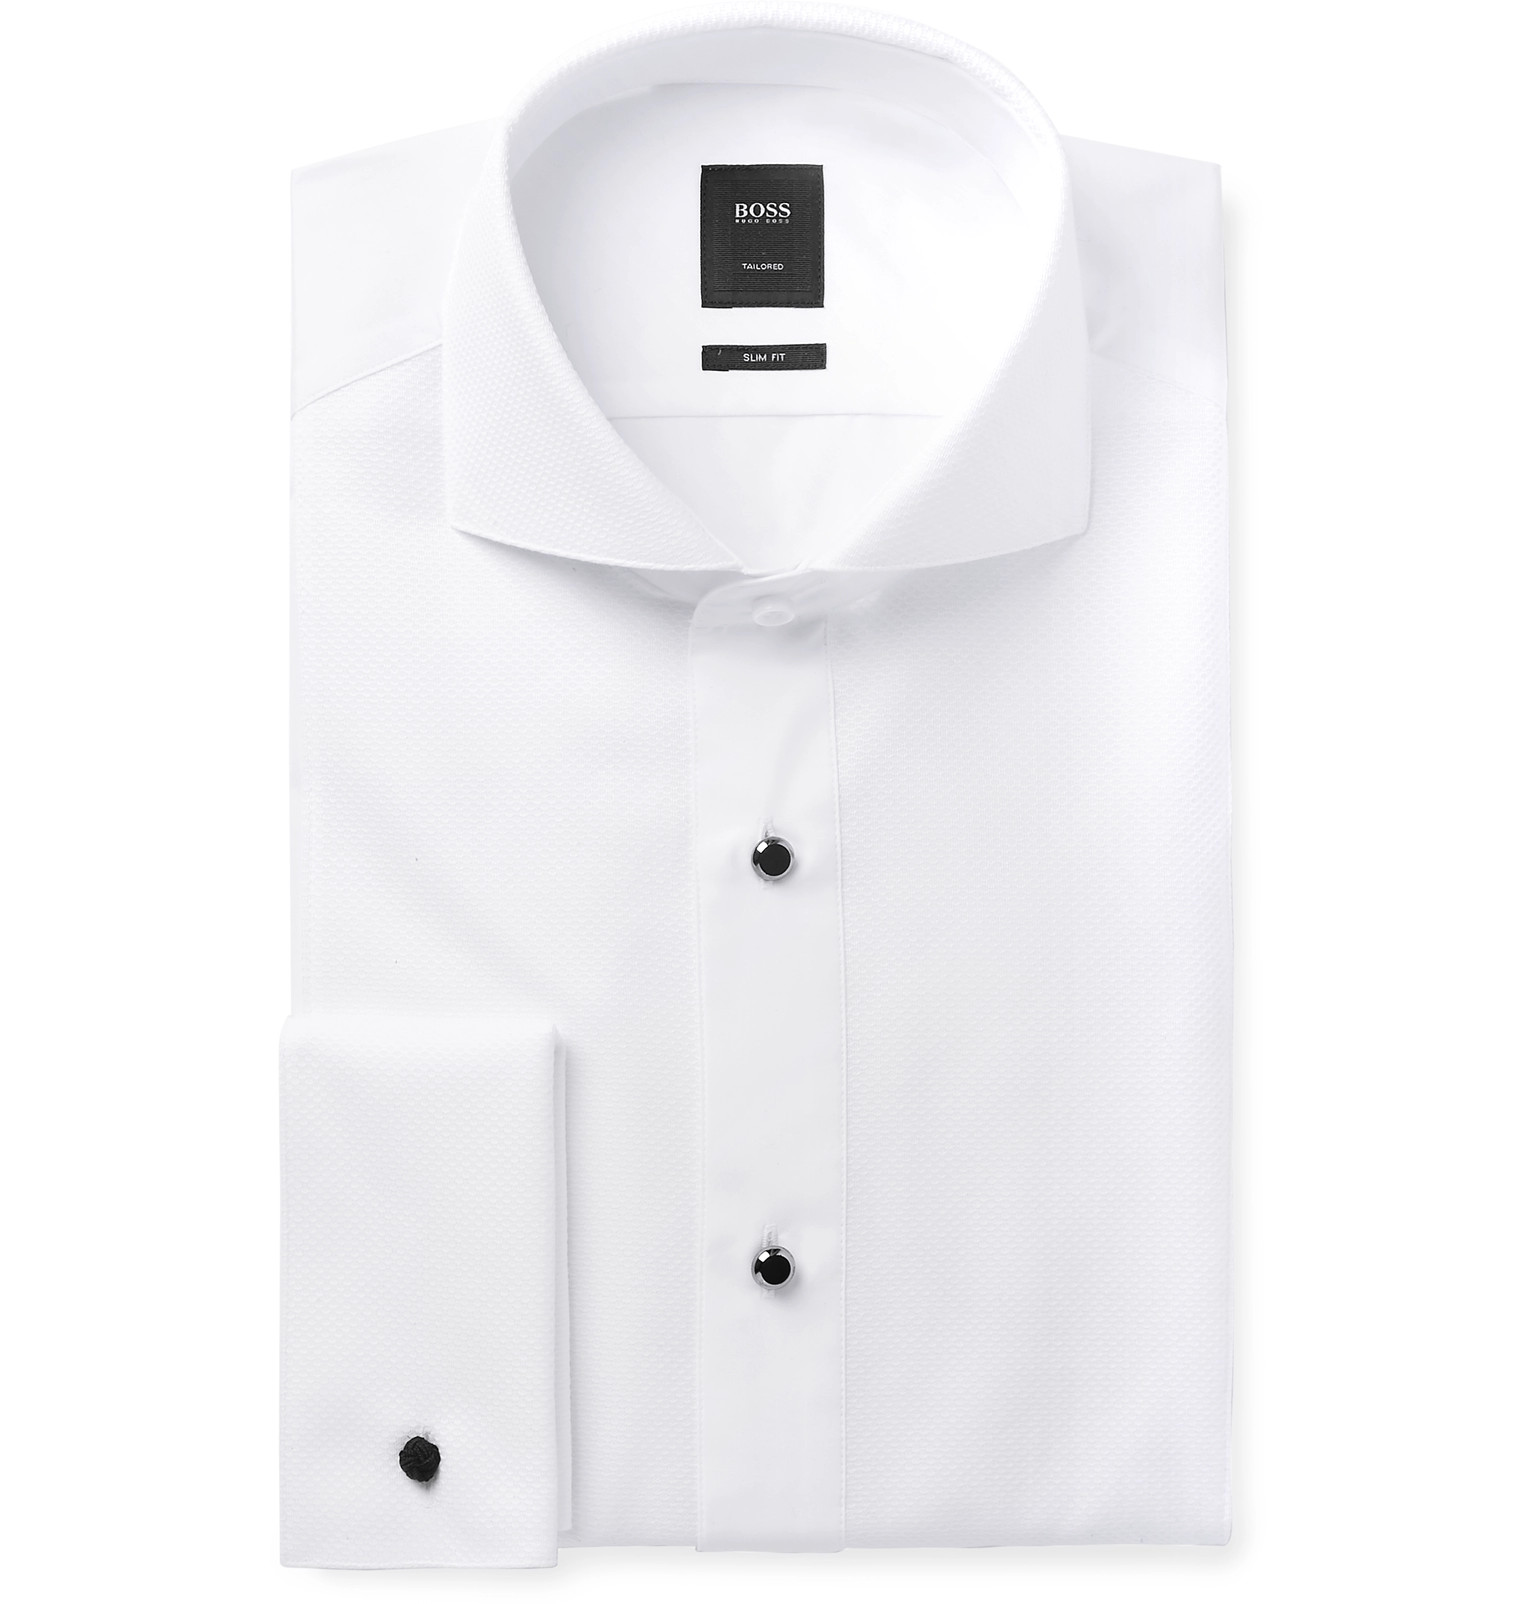 72b0447ec Hugo Boss Slim Fit Dress Shirt – EDGE Engineering and Consulting Limited